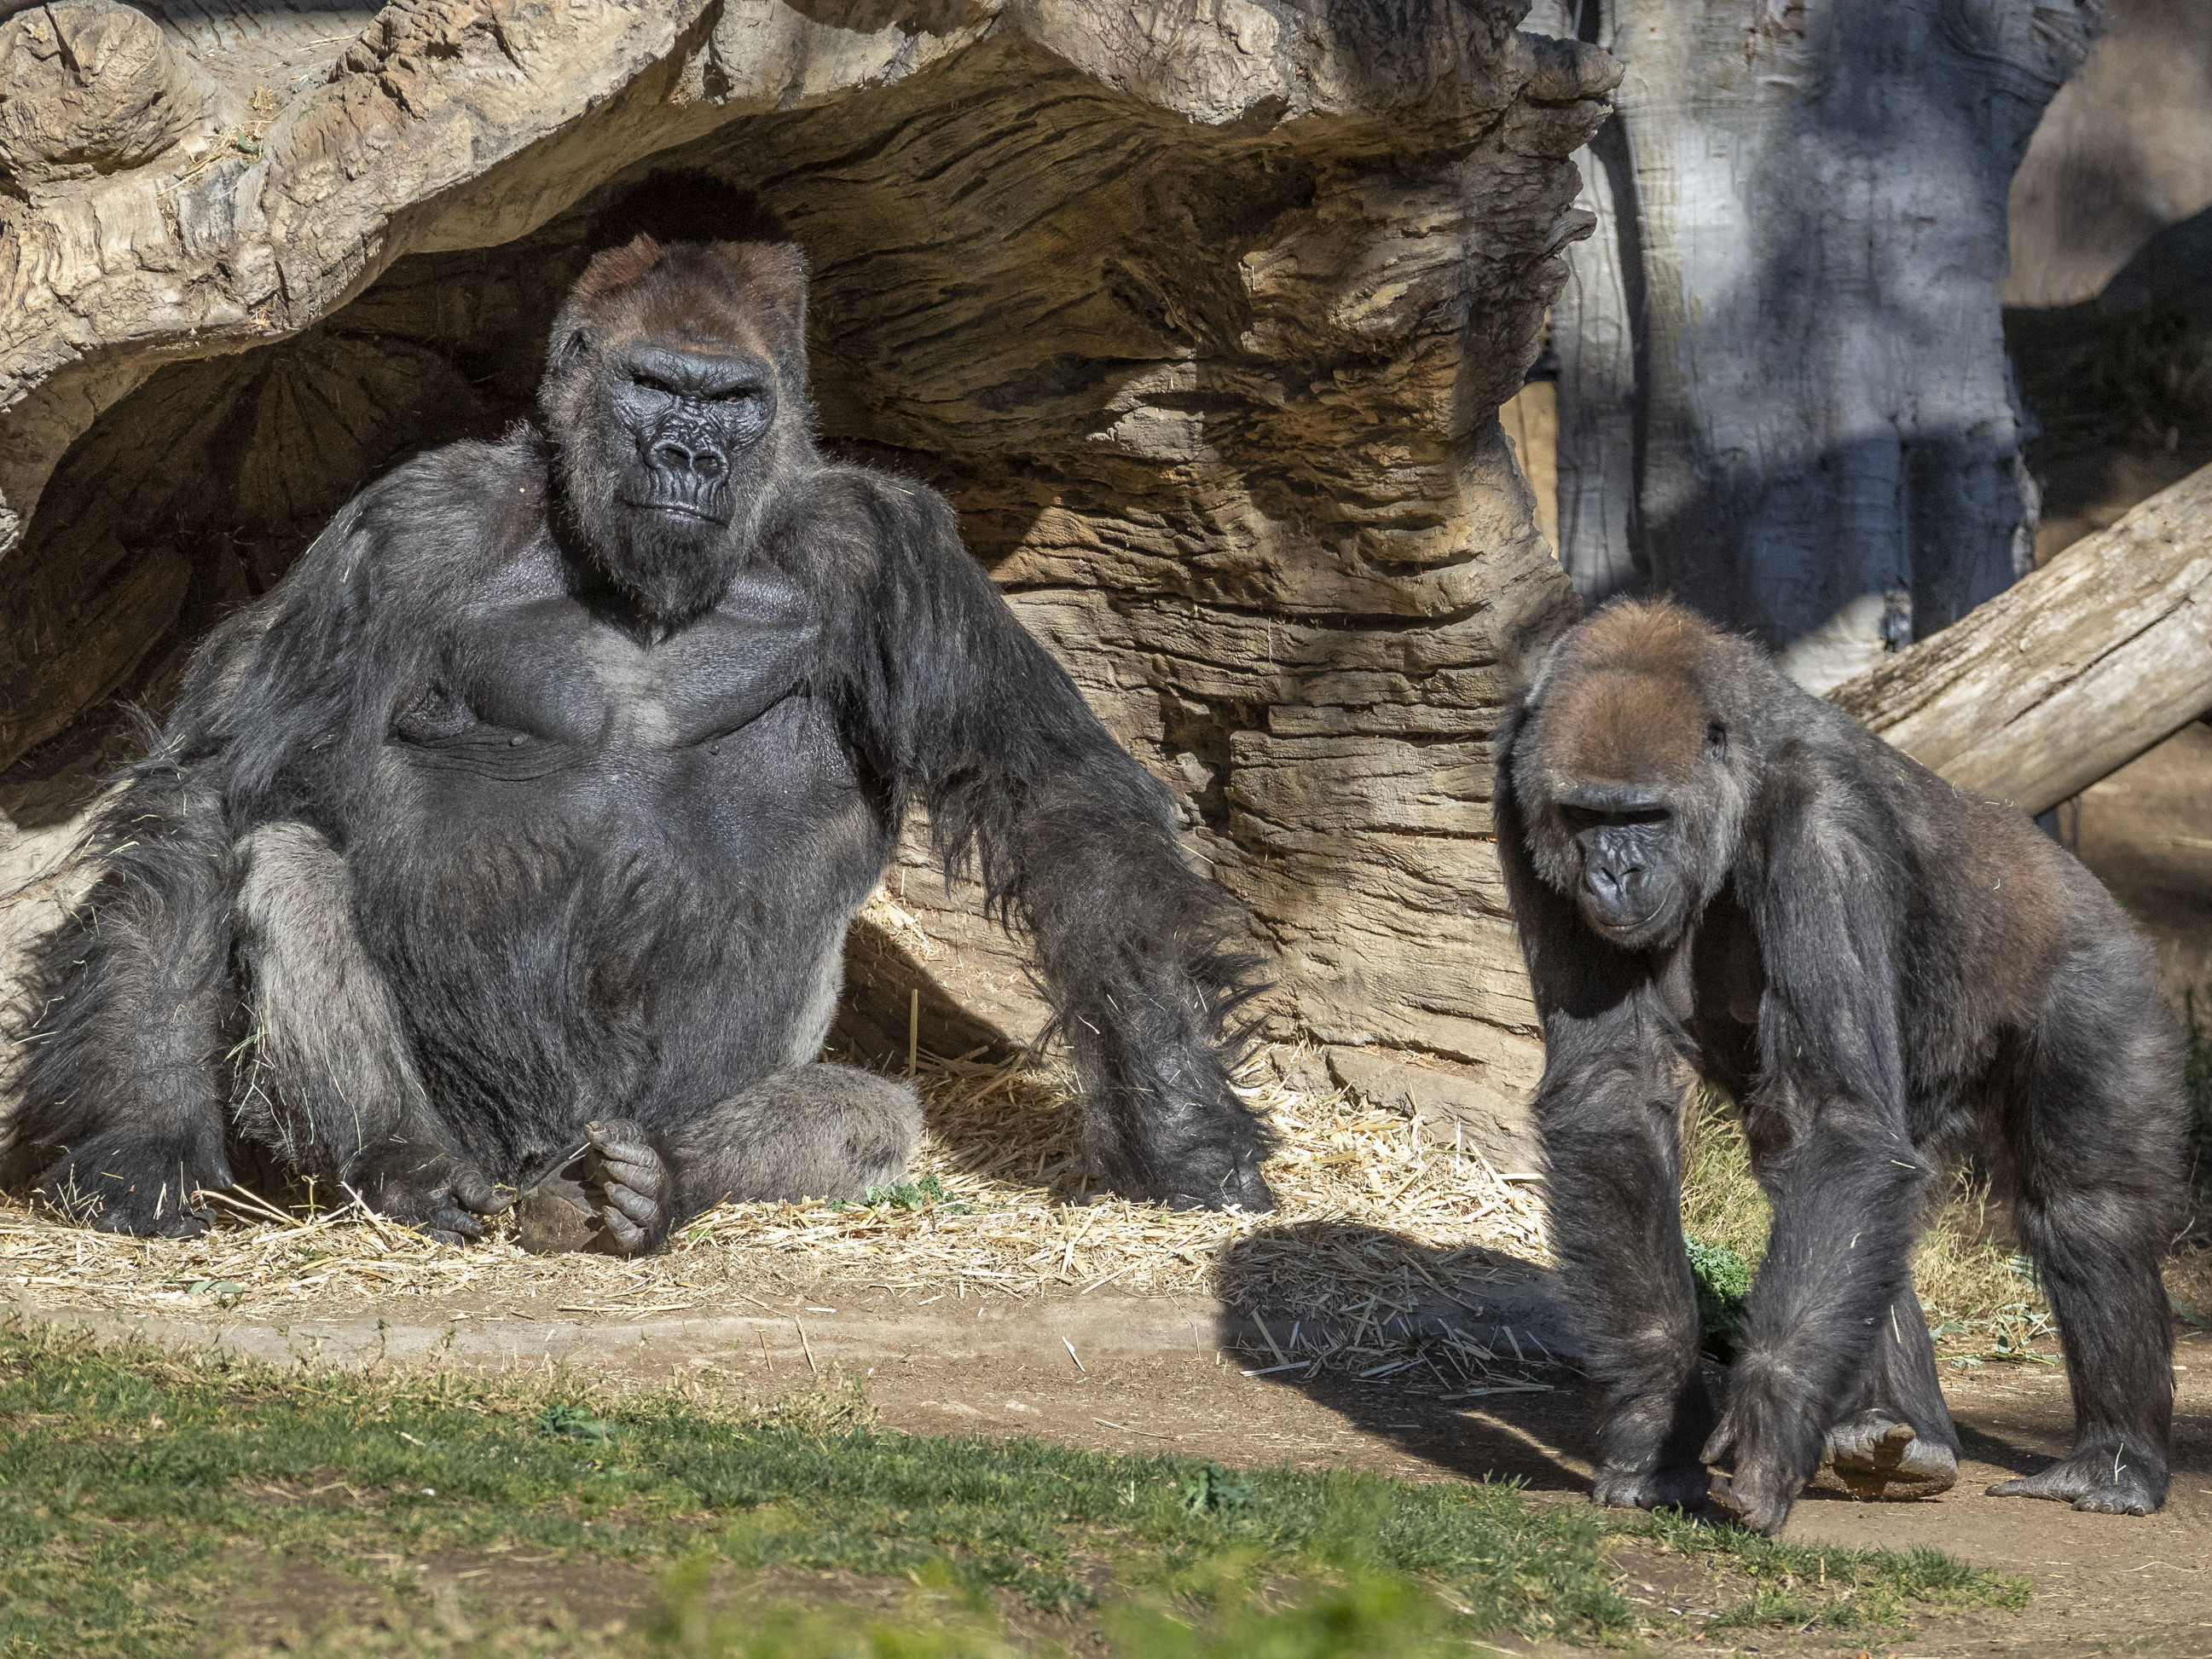 Gorillas contract coronavirus at zoo in first natural transmission to apes